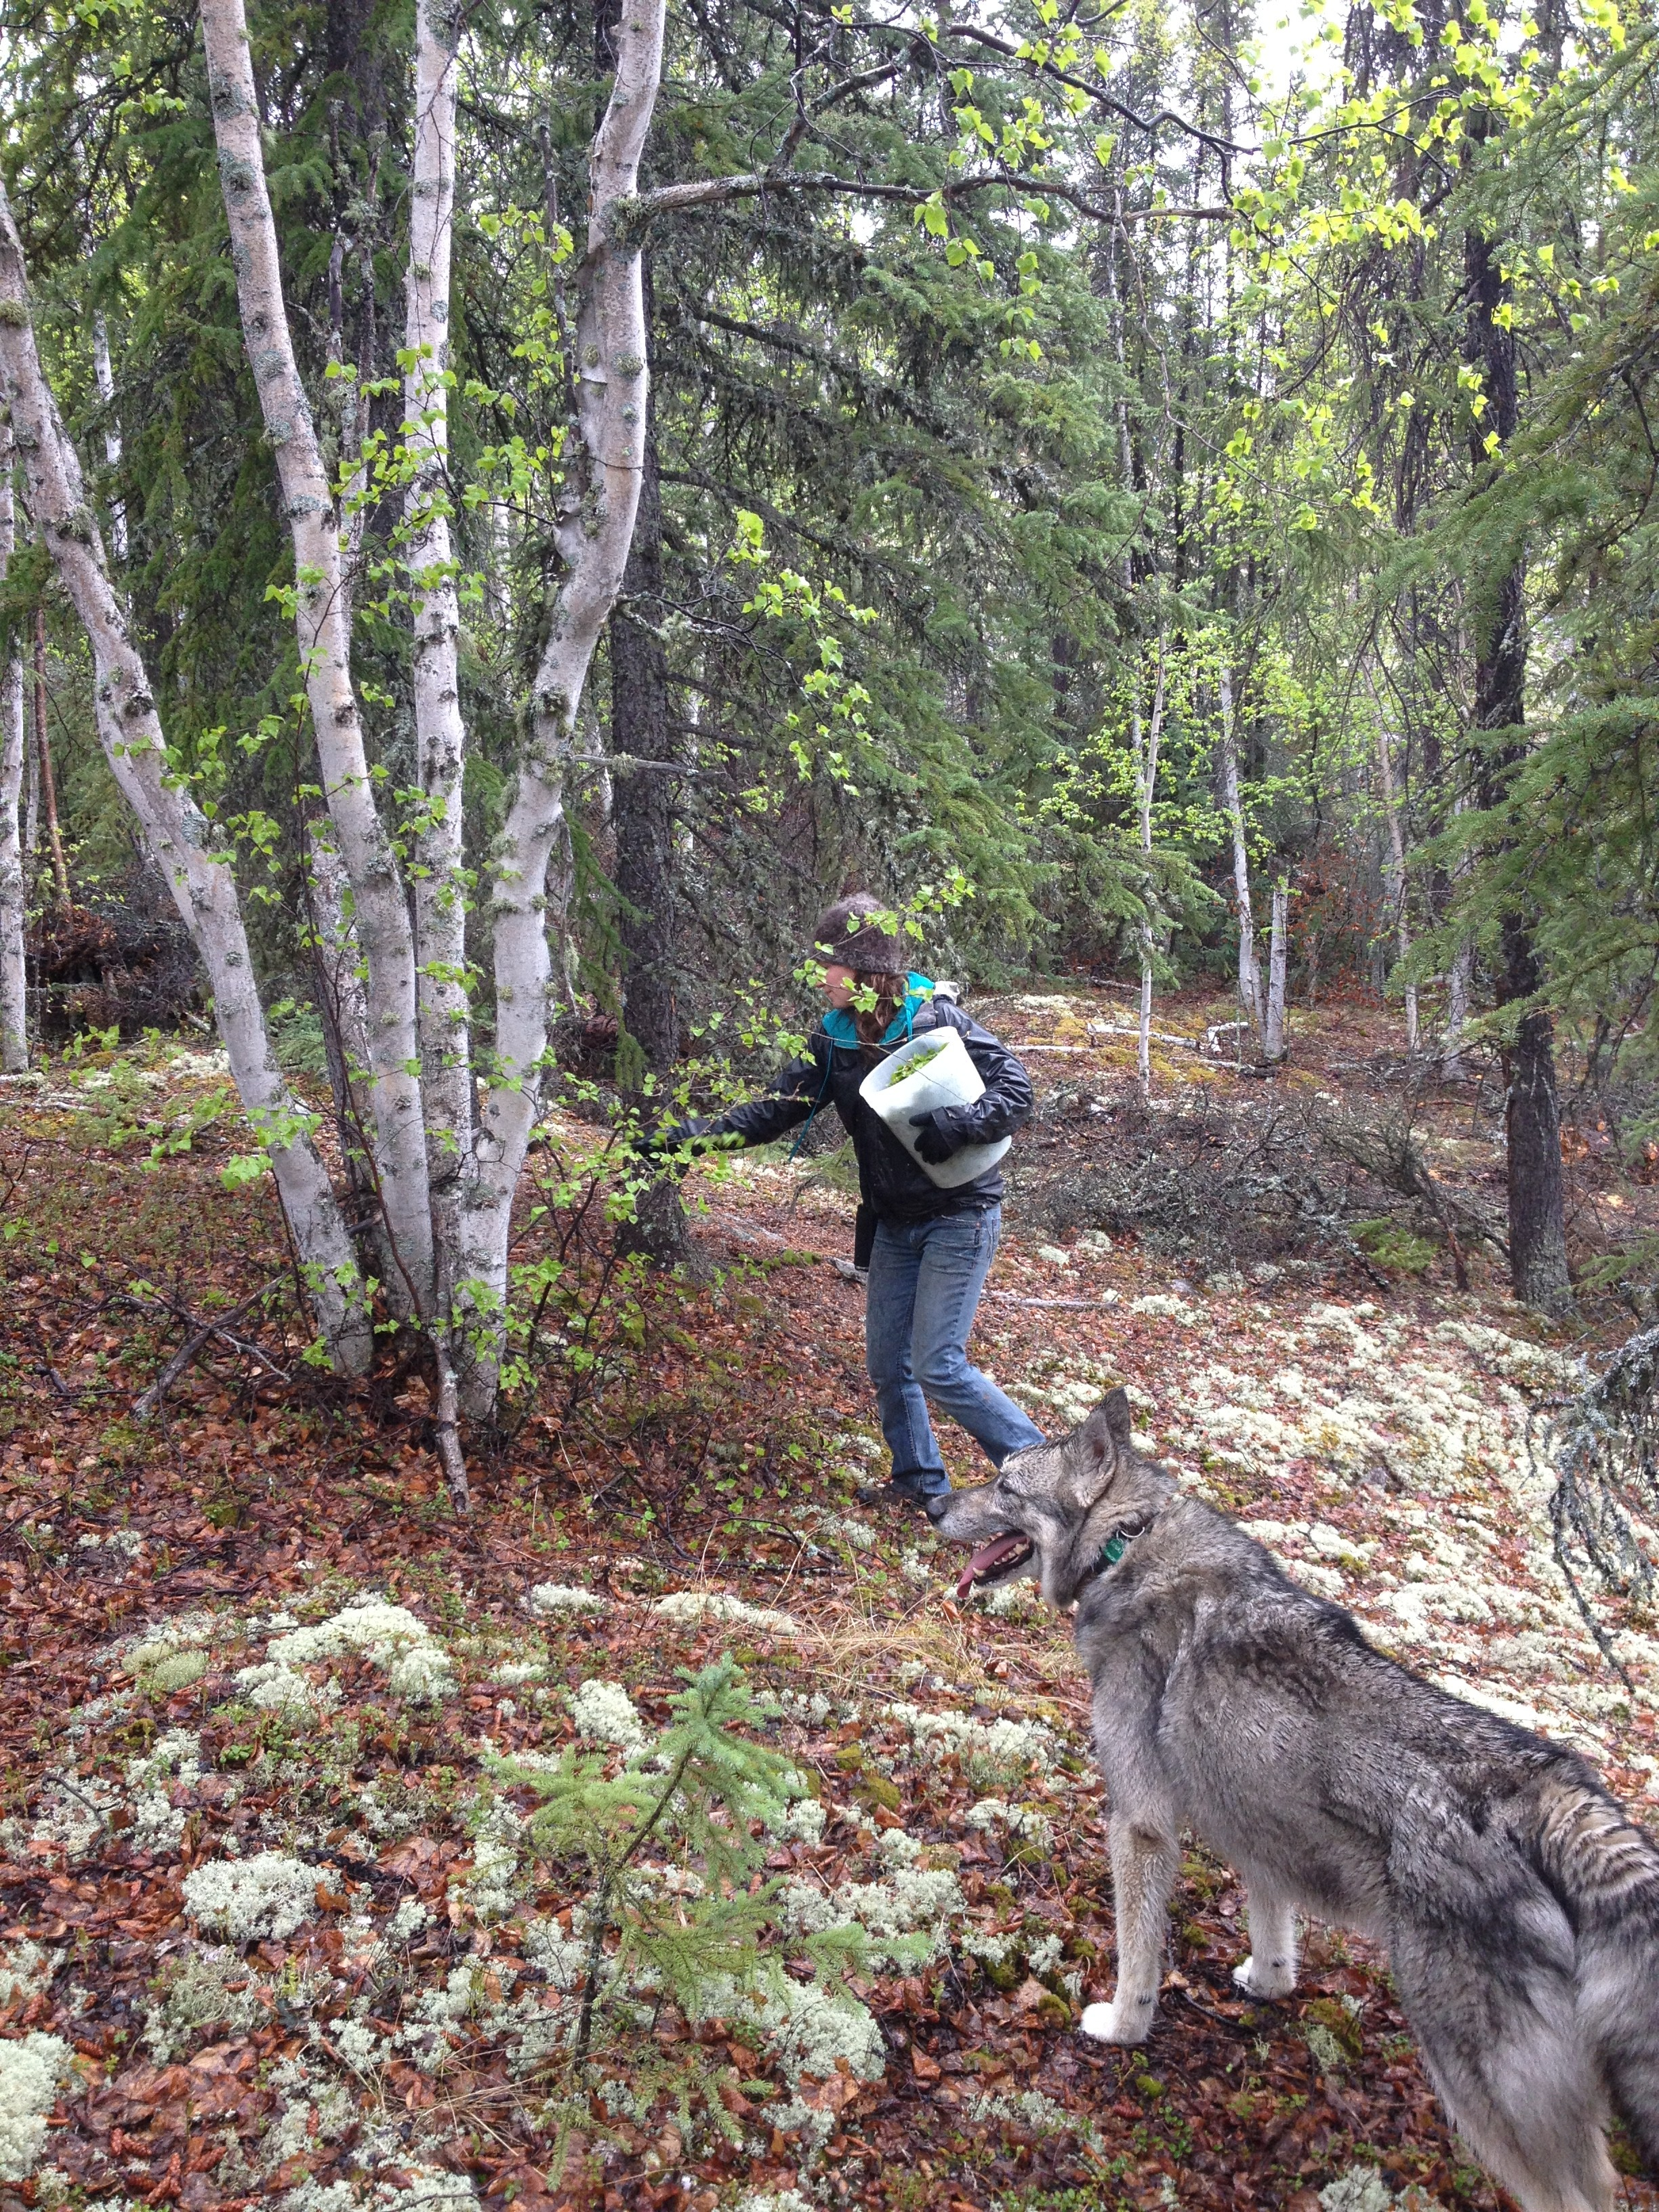 Collecting Spring Birch Leaves For Tea, Northwest Territories